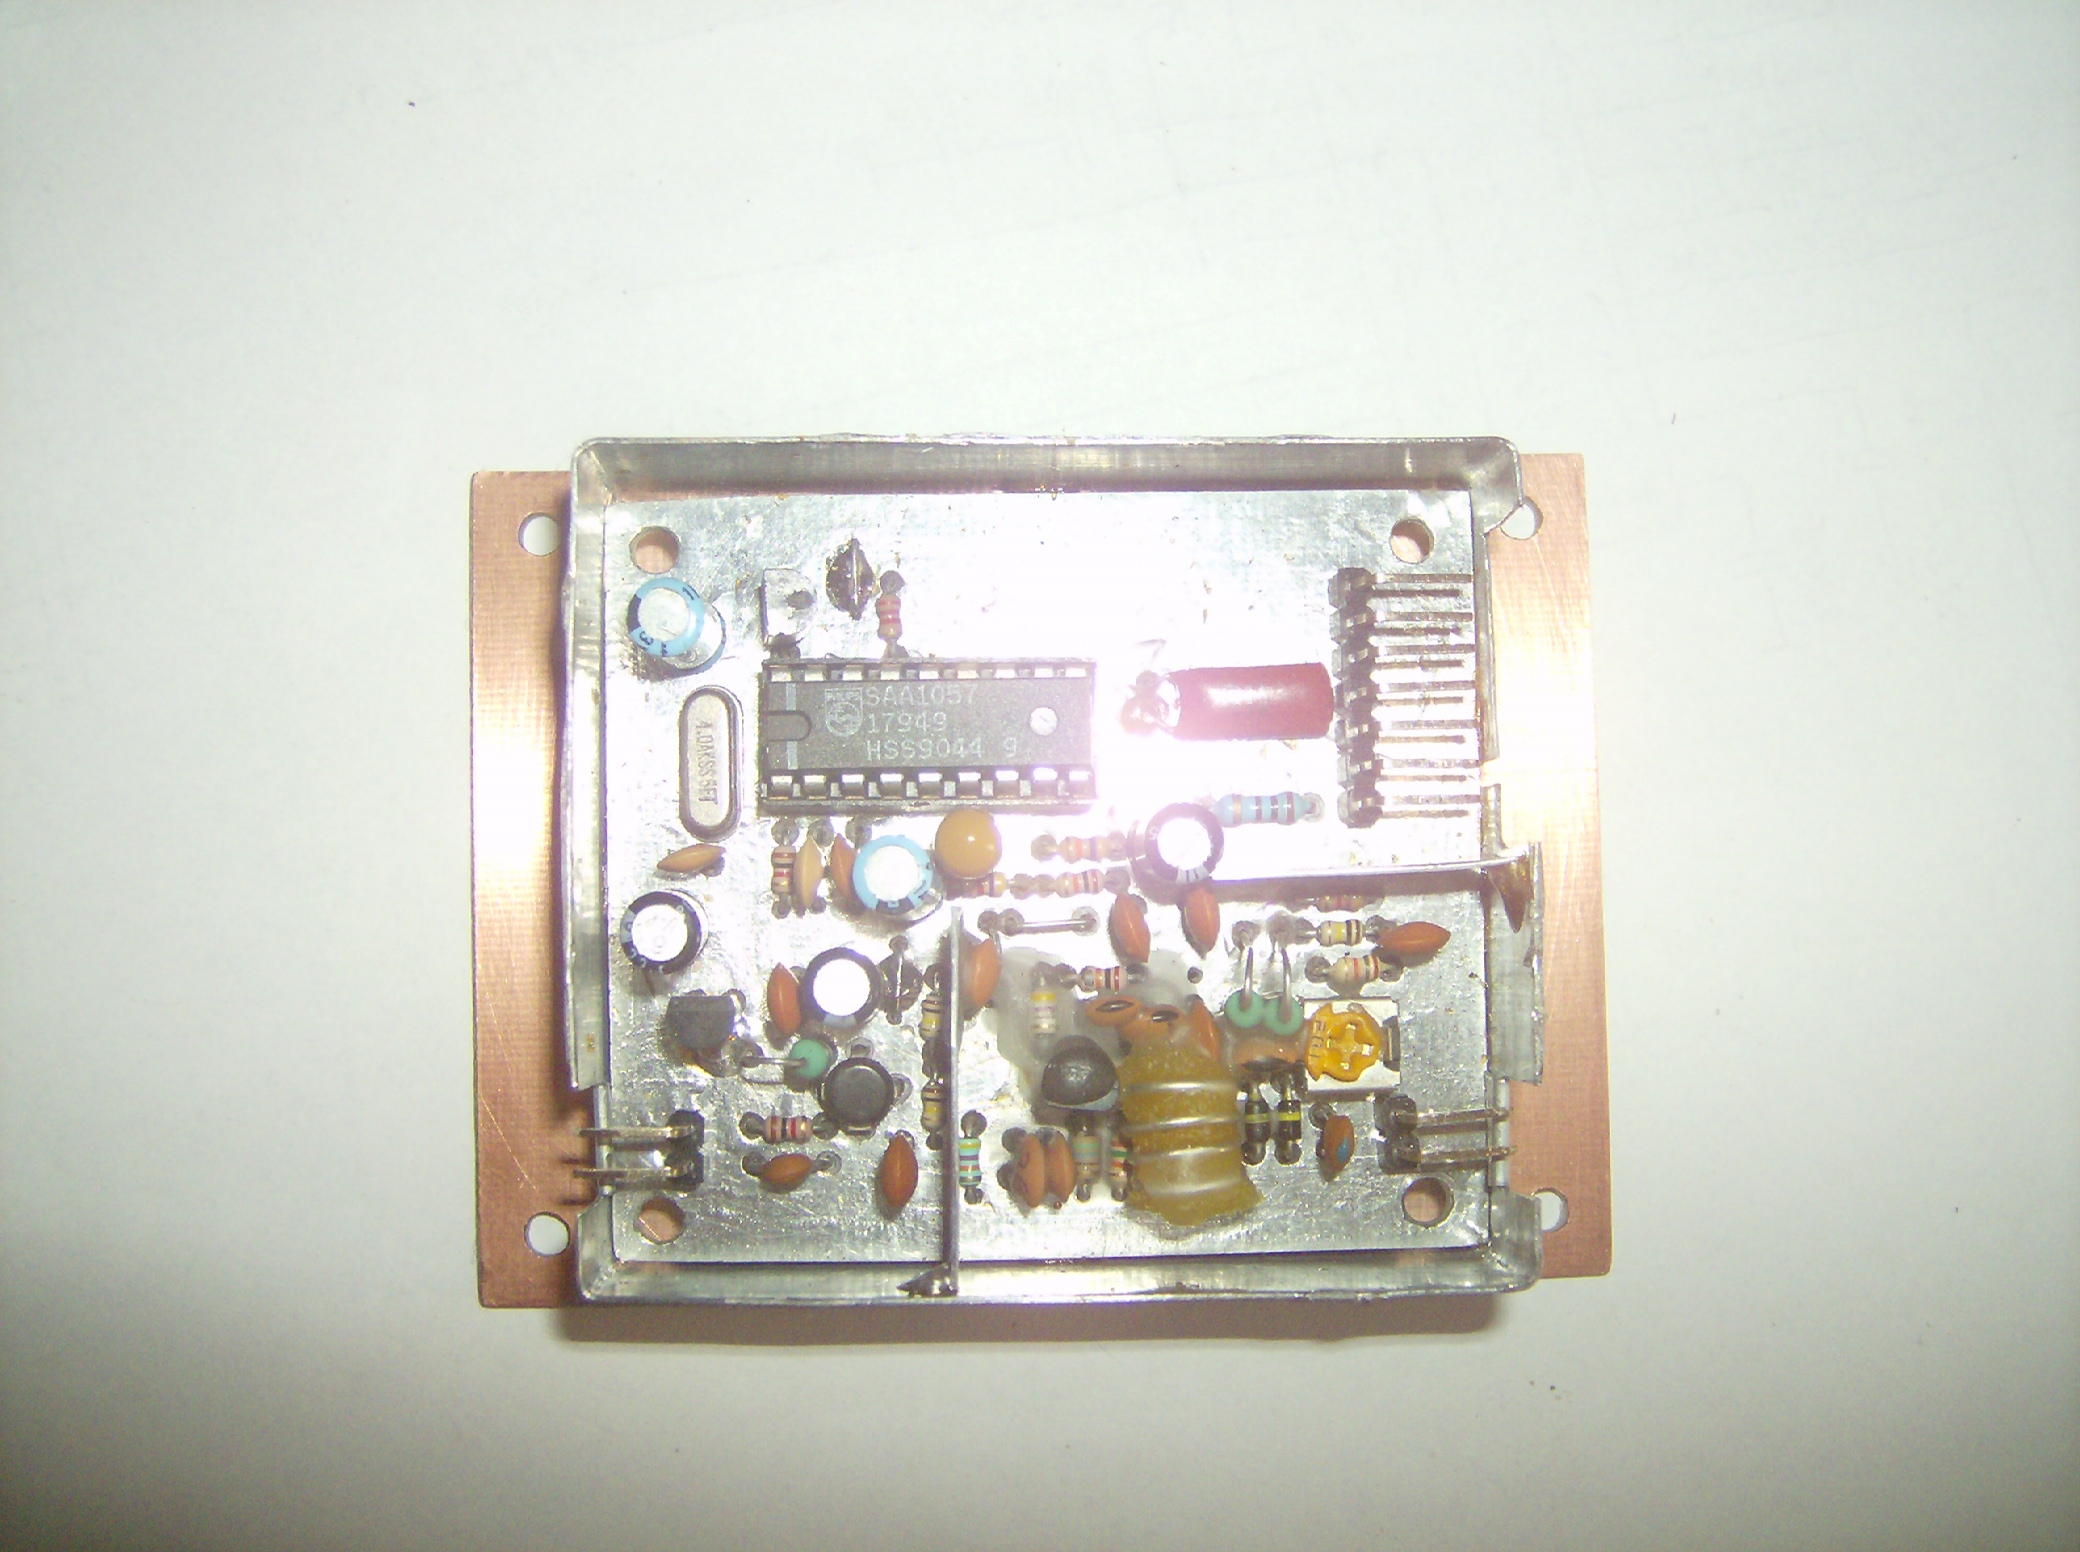 Pll Fm Transmitter Stereo Circuit Using Bh1417